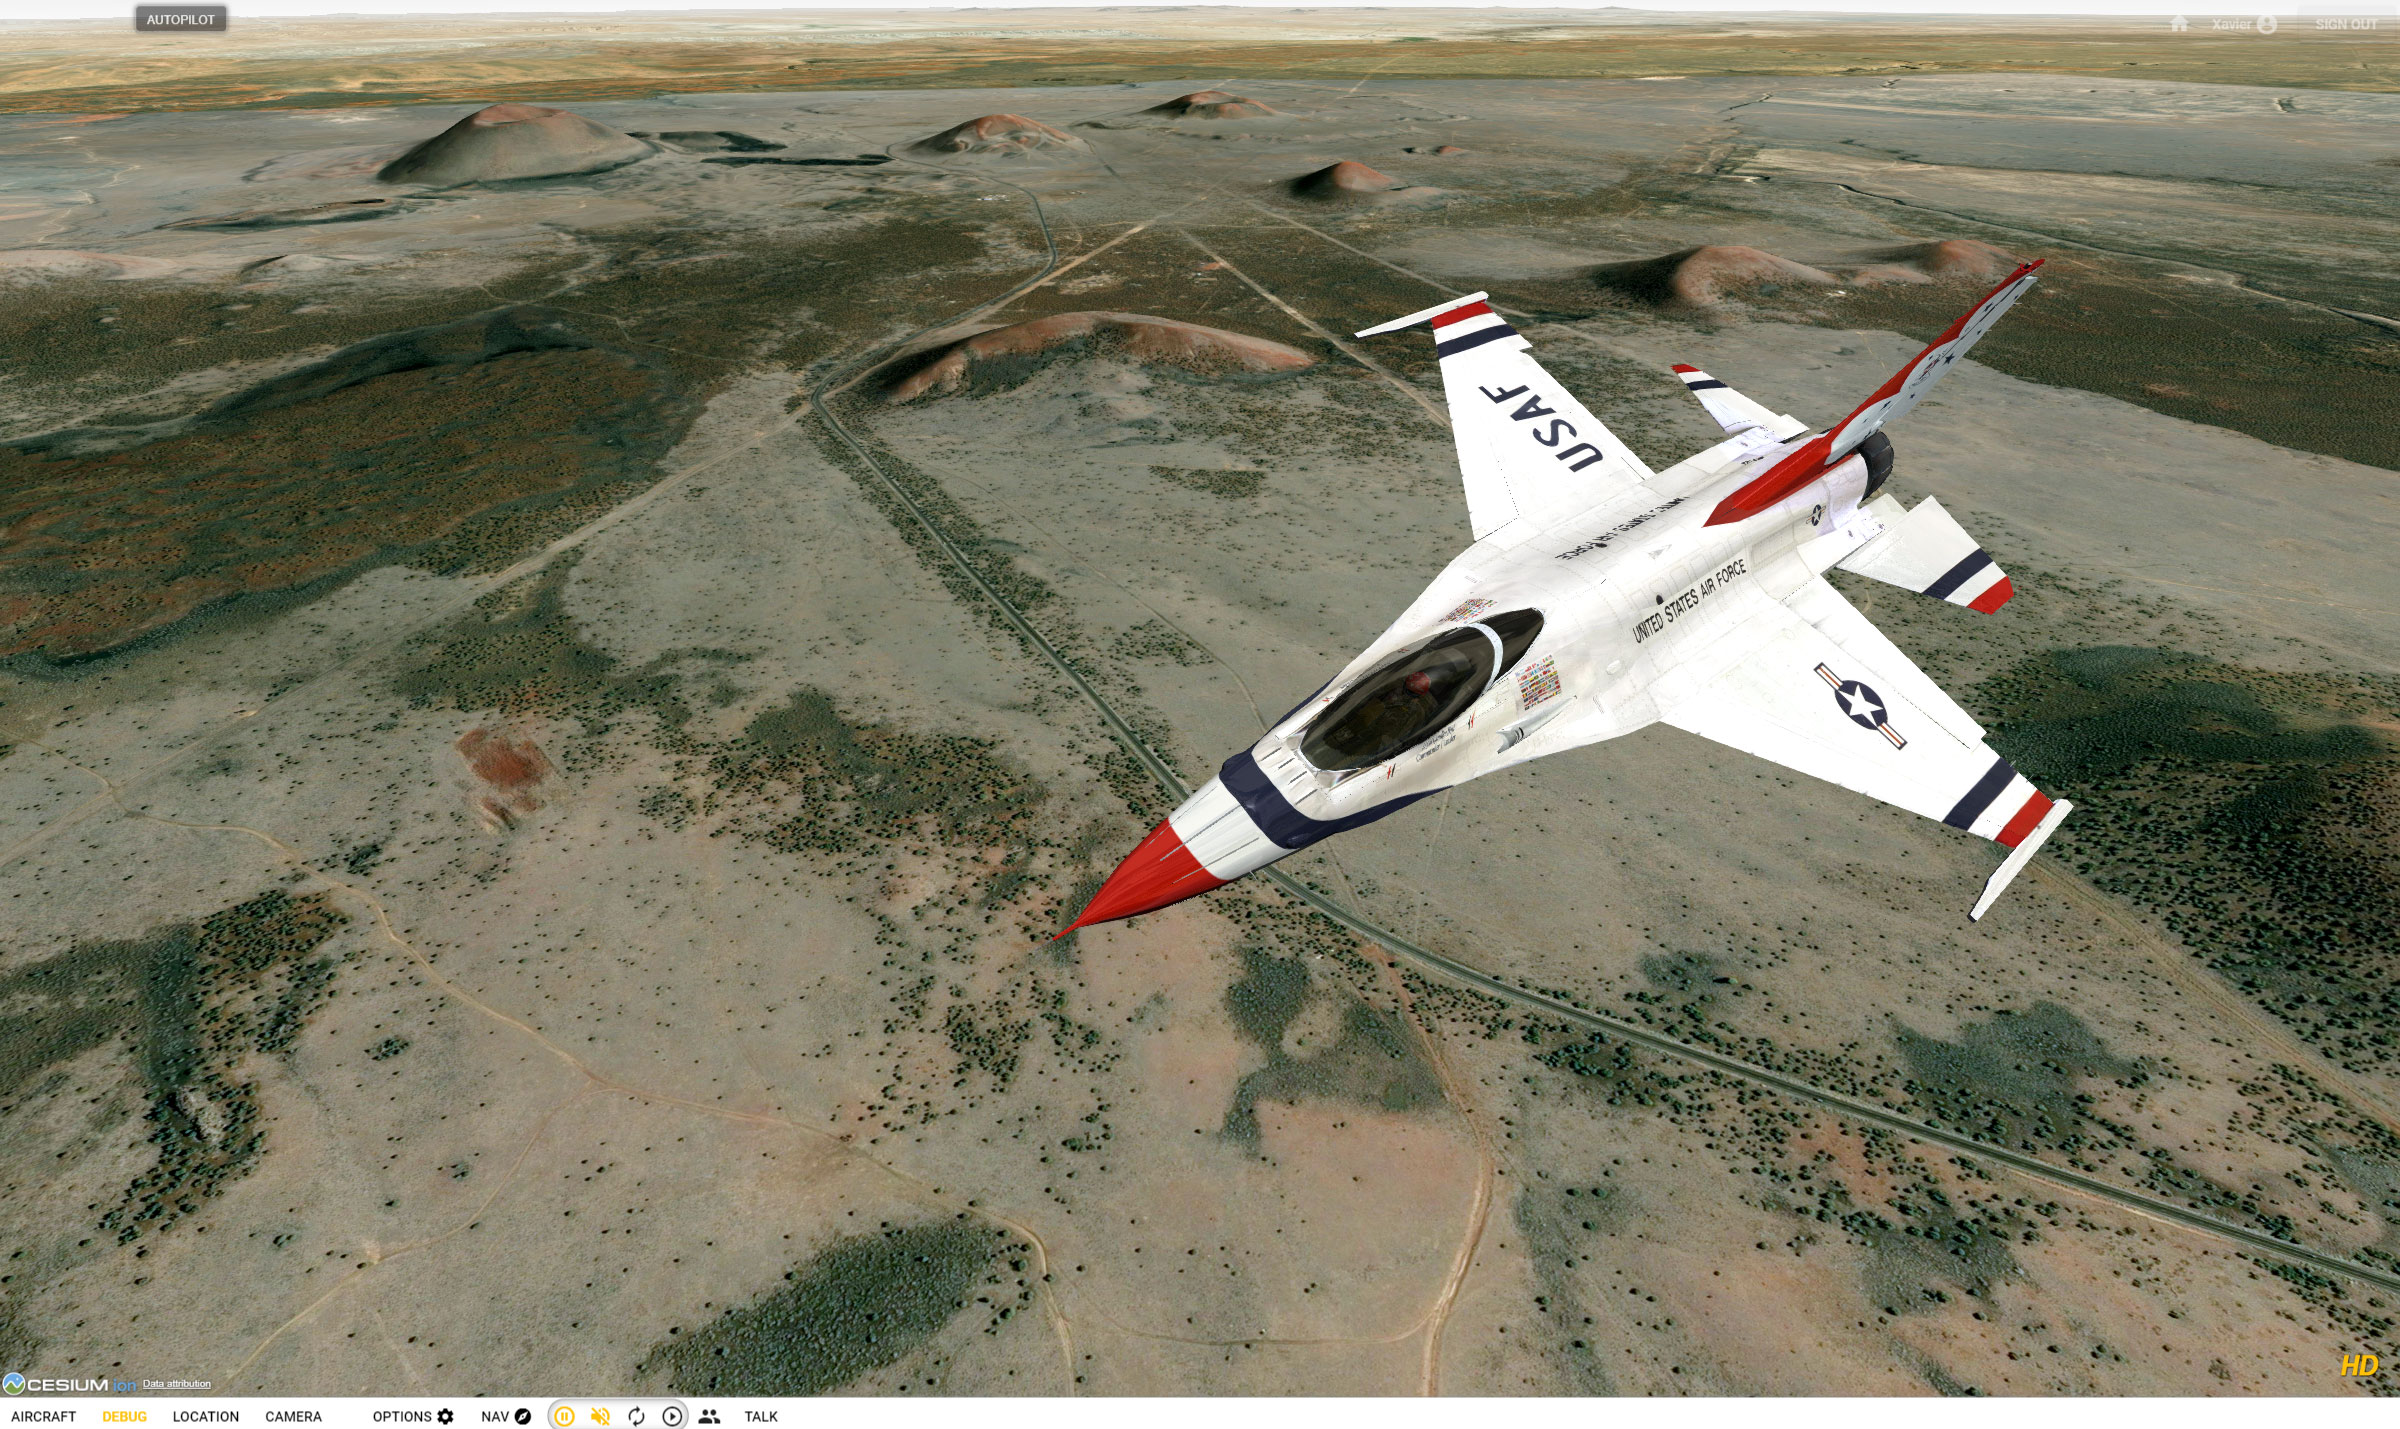 I, the copyright holder of this work, hereby publish it under the following license: English F16 Over American desert